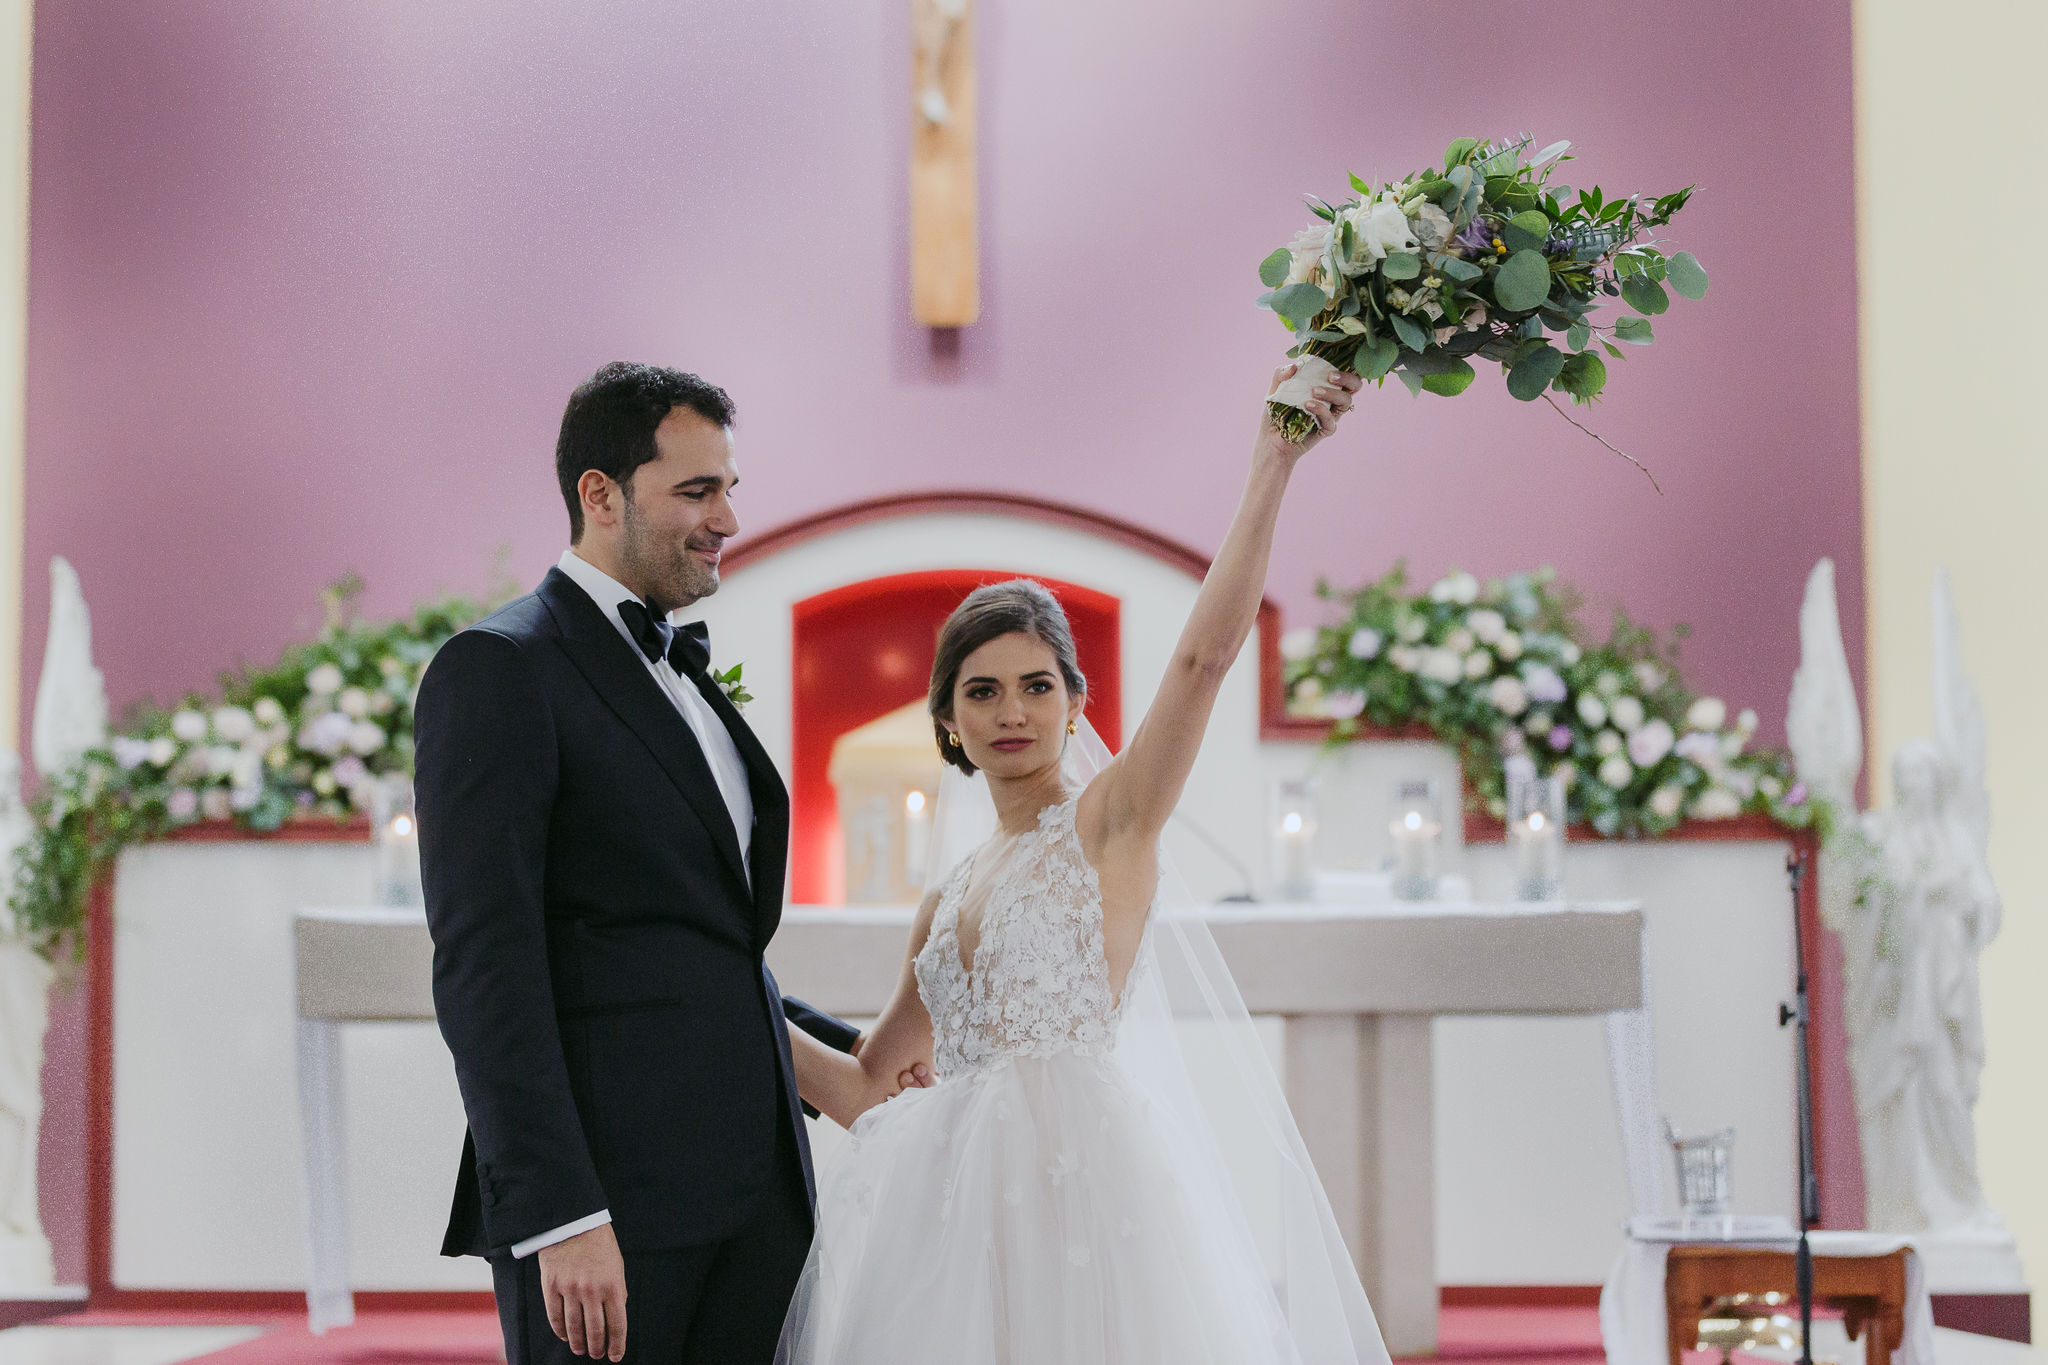 Christian & Renee's Luxurious Wedding In Trinidad & Tobago, Photography by Jane Decle Photography for Destination Wedding Bog Adriana Weddings